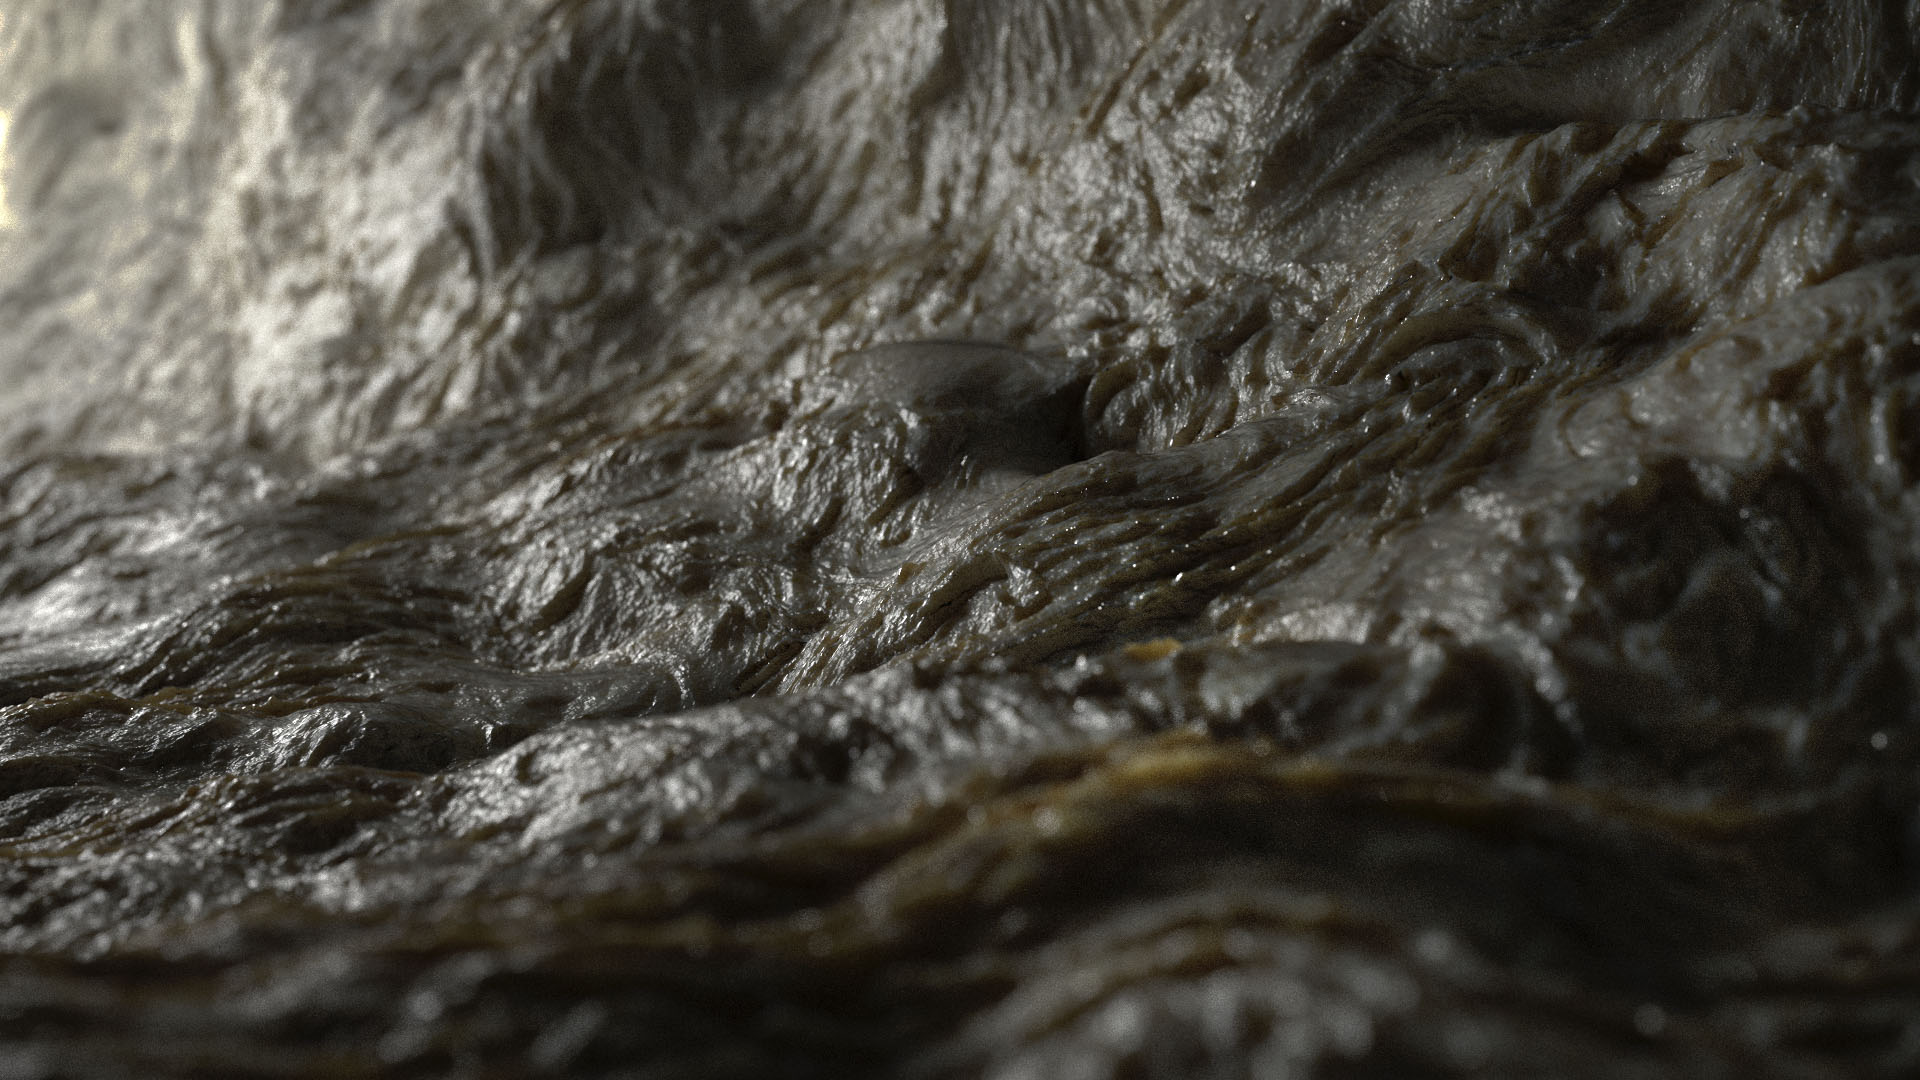 vray displacement and sss testing